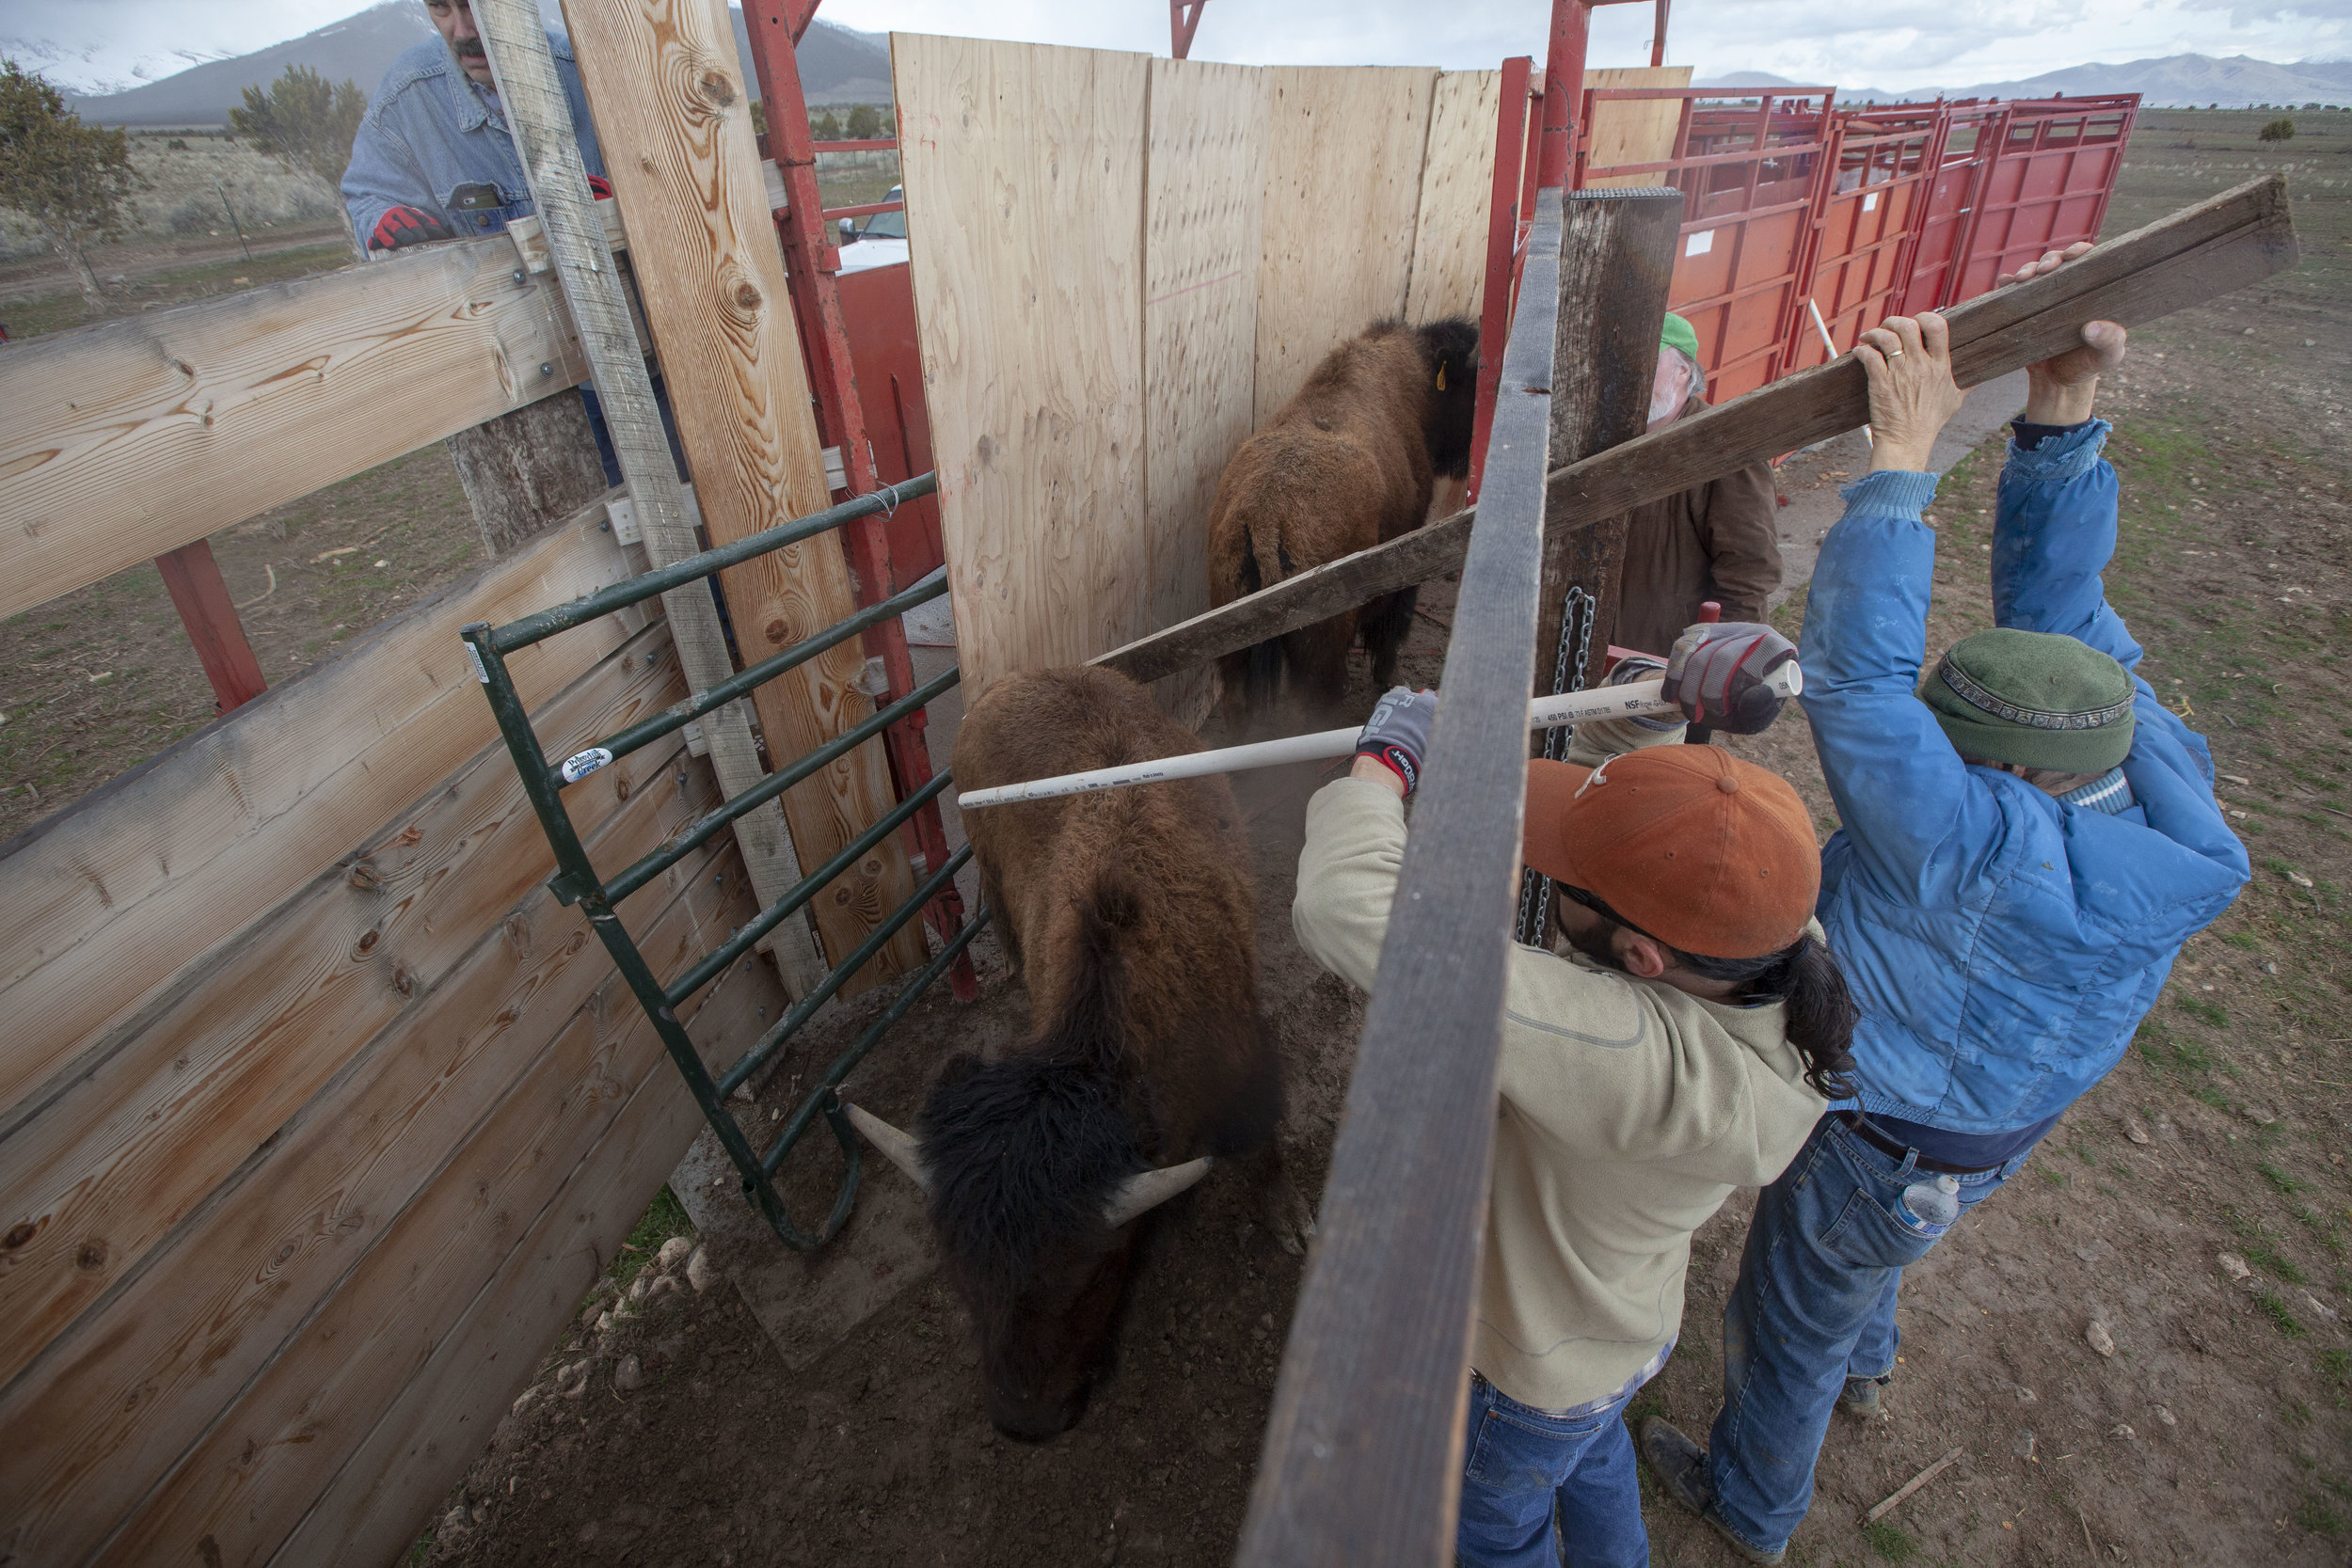 Volunteers poke bison with a two by four and PVC pipes to urge them through a chute